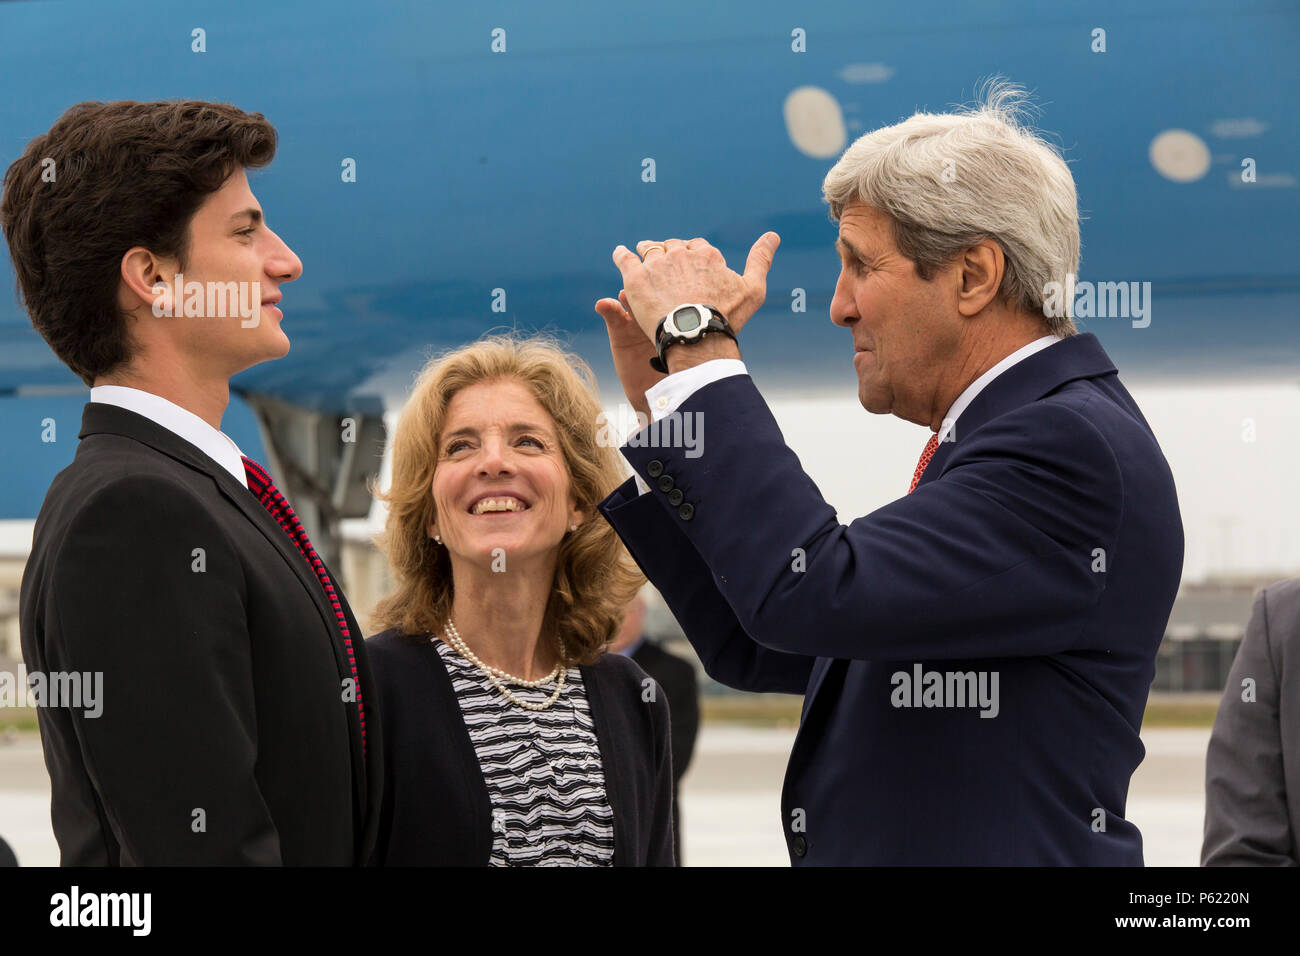 Caroline kennedy hiroshima jack schlossberg japan john kerry stock john f kerry the us secretary of state speaks to jack schlossberg altavistaventures Images